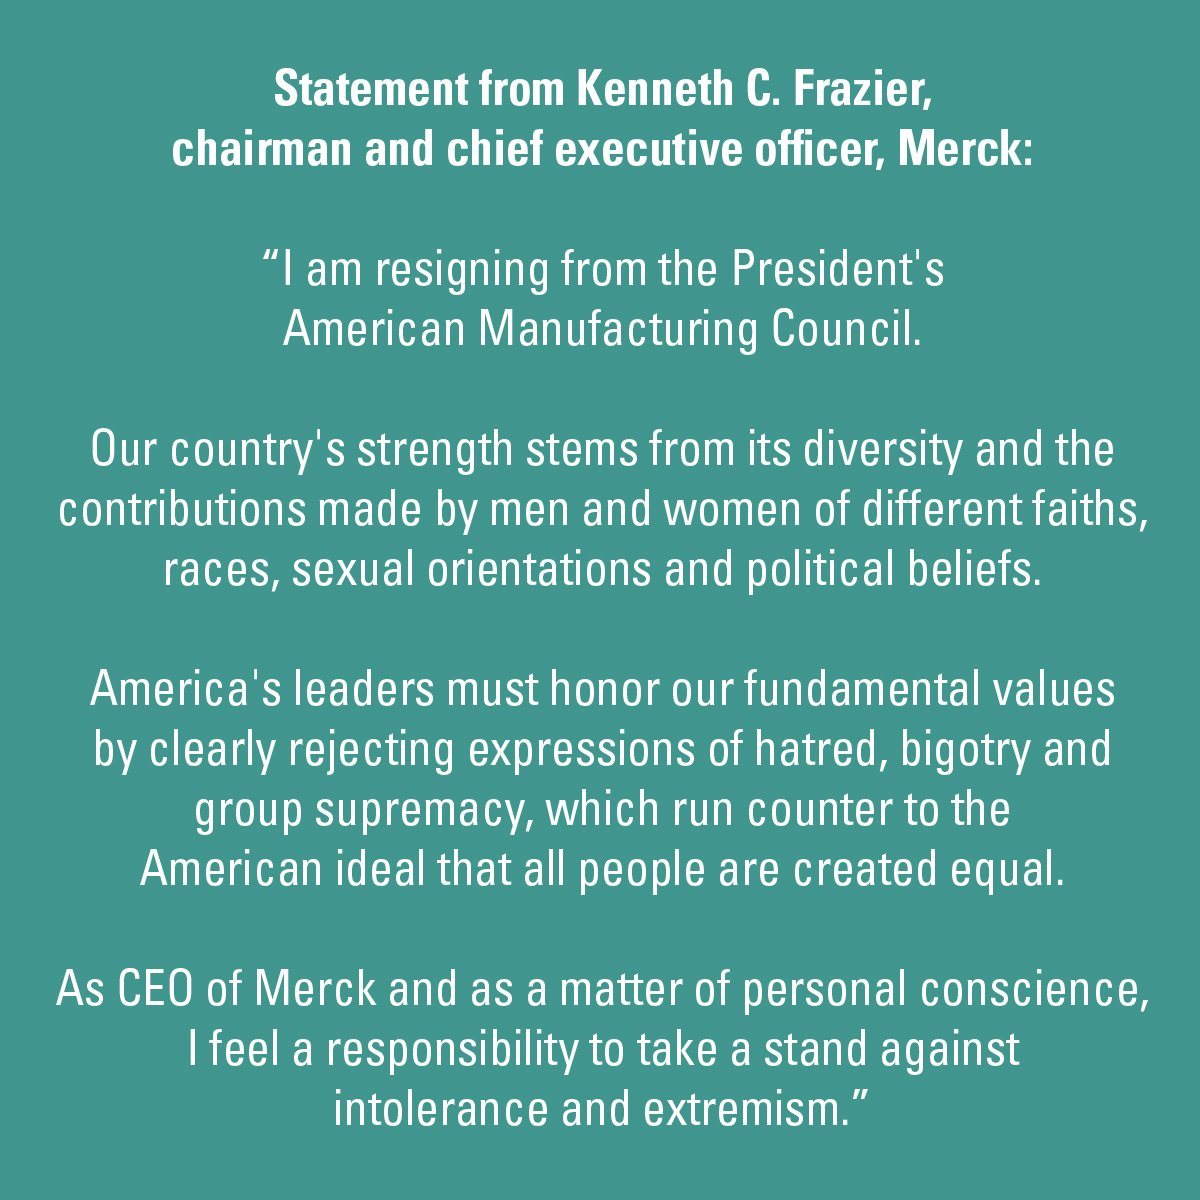 merck statement